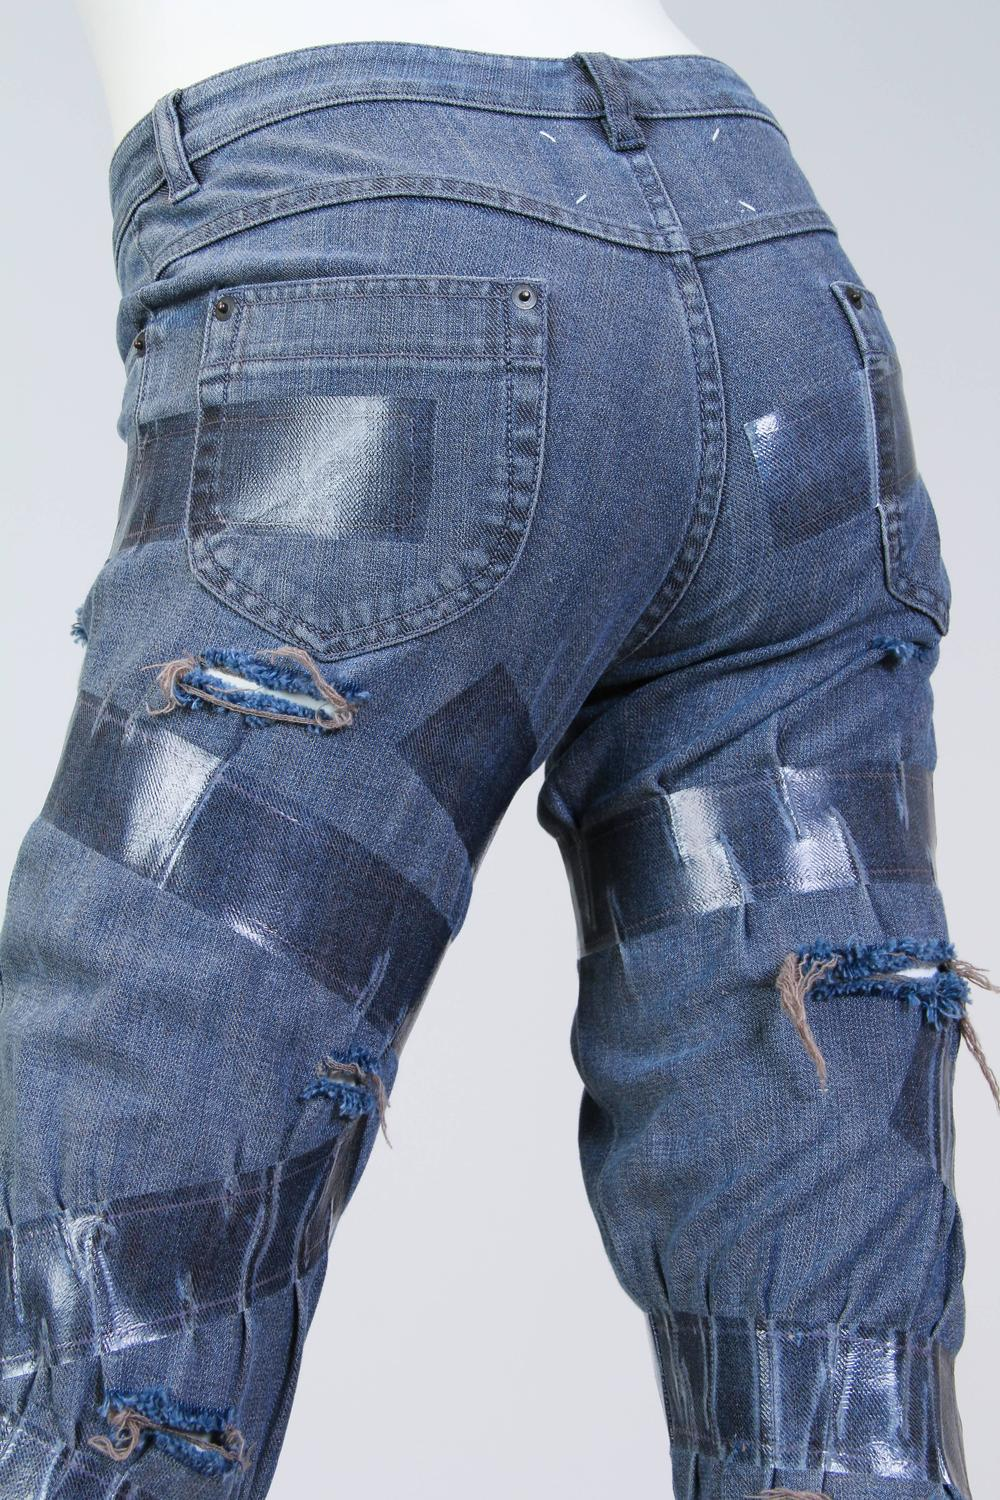 Martin Margiela Deconstructed Quot Taped Quot Jeans For Sale At